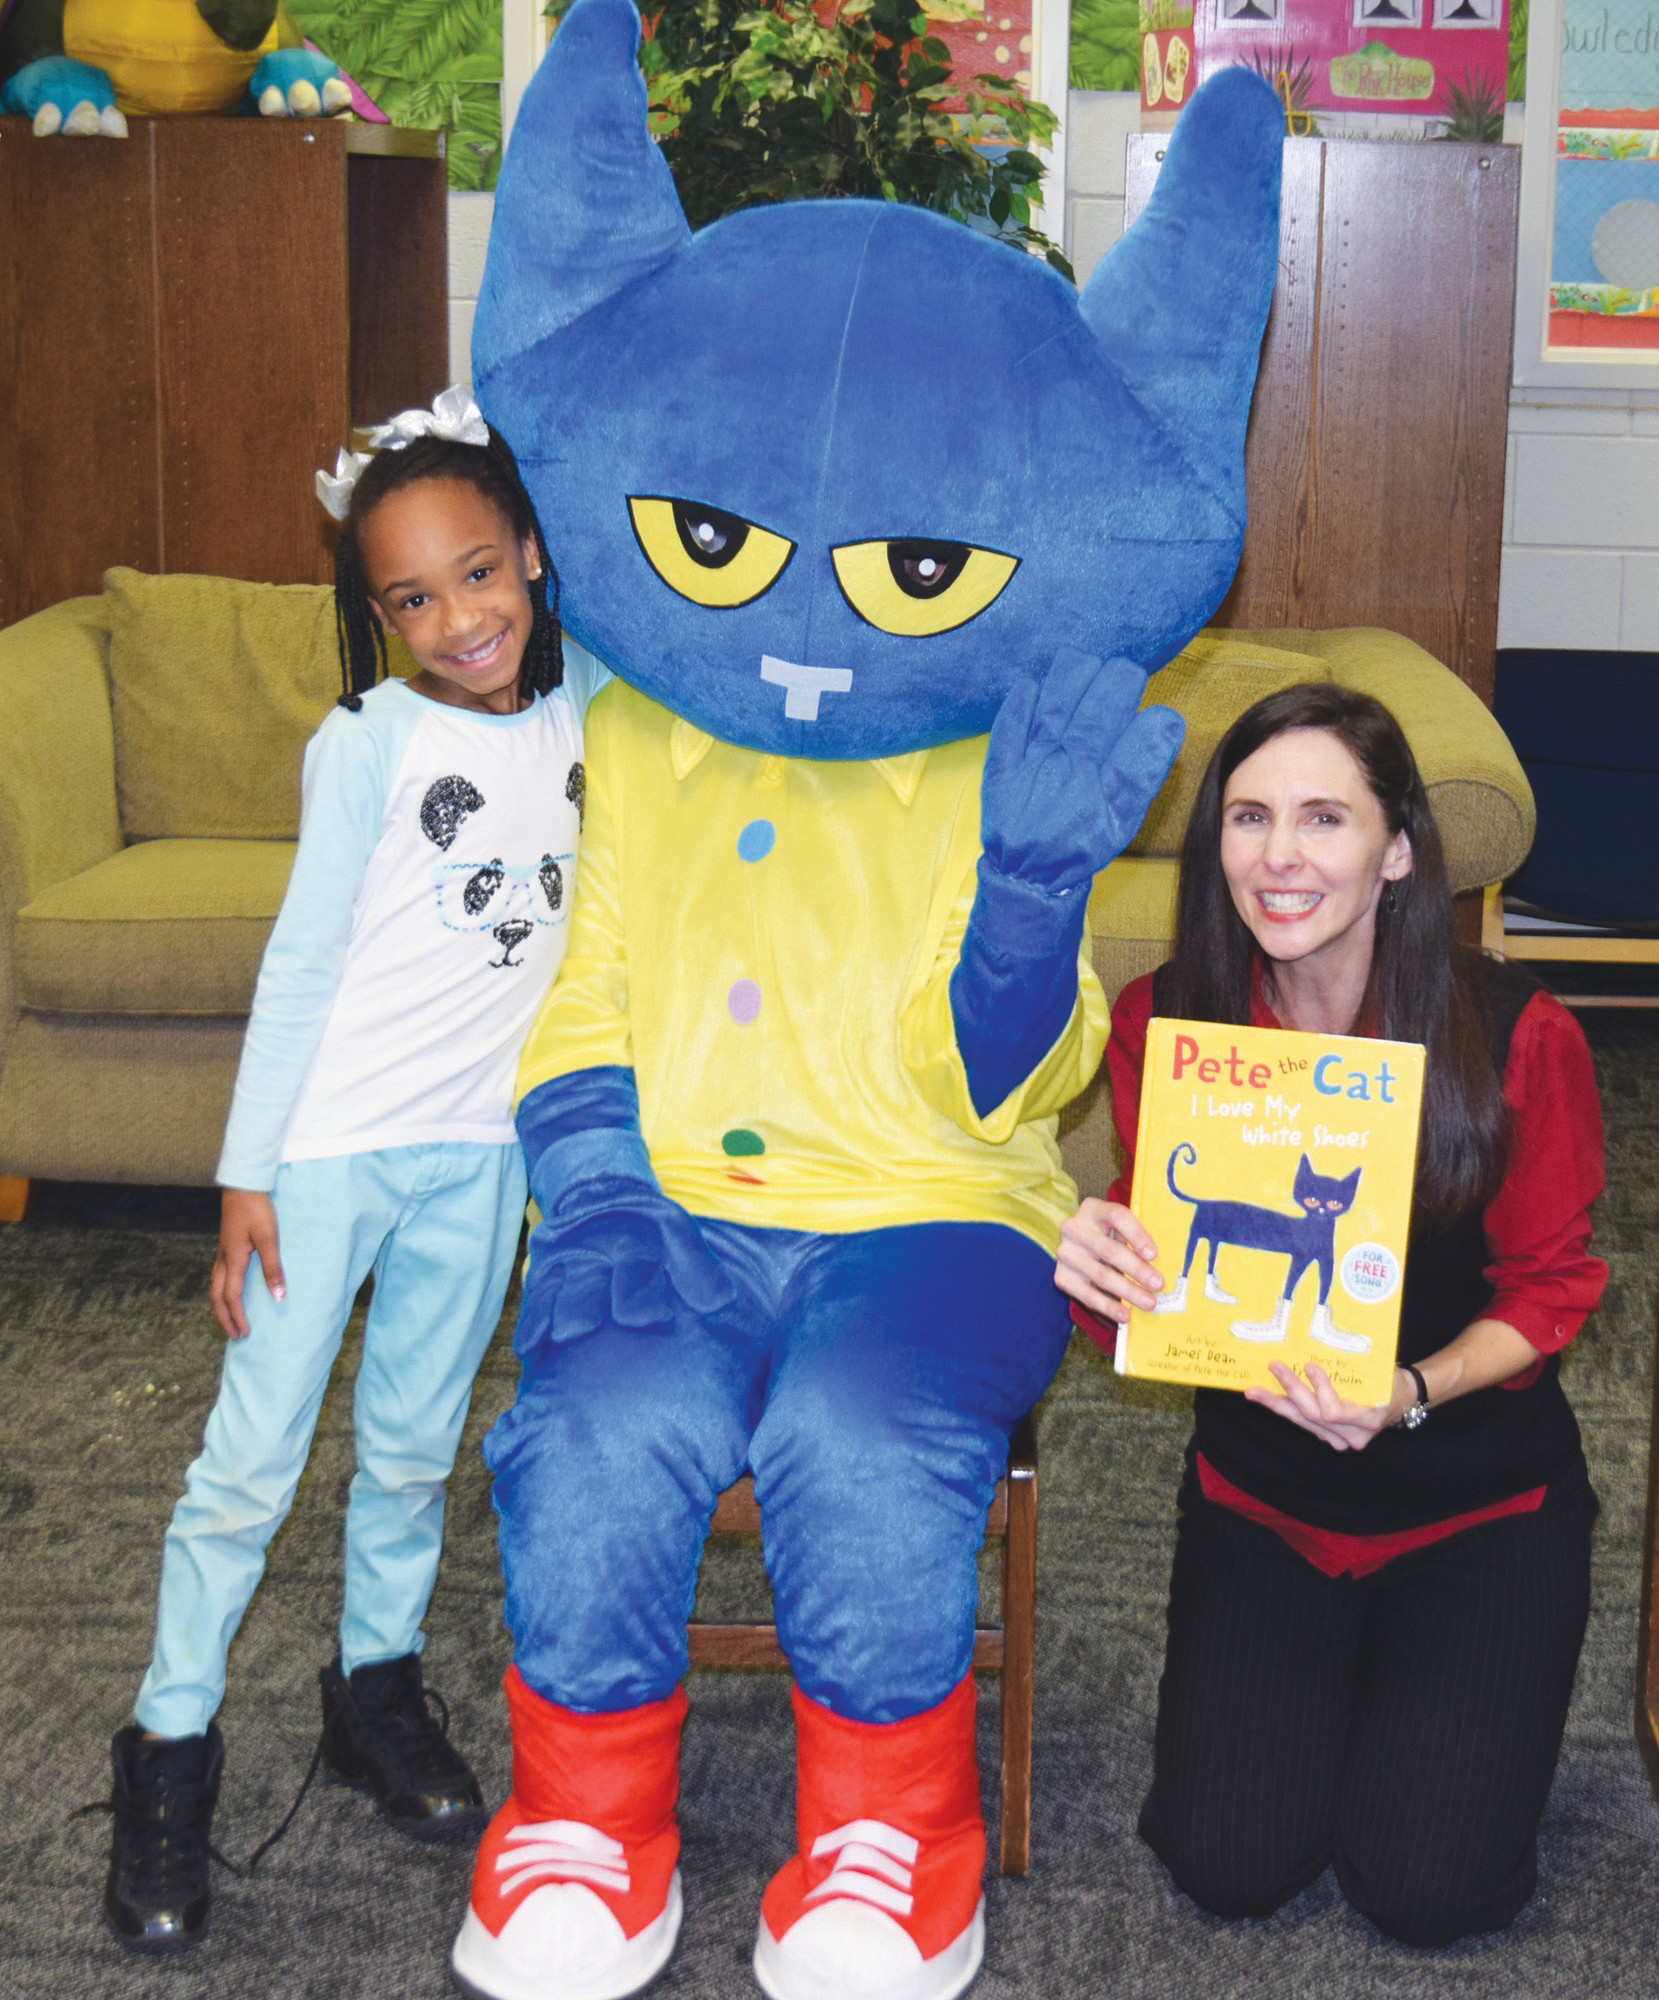 PHOTOS PROVIDEDKingsbury Elementary School first-grader Takiyah Miller meets Pete the Cat at the school's annual Family Reading Night. Holding the book is Christy Smith, director of children's services at the Sumter County Library.